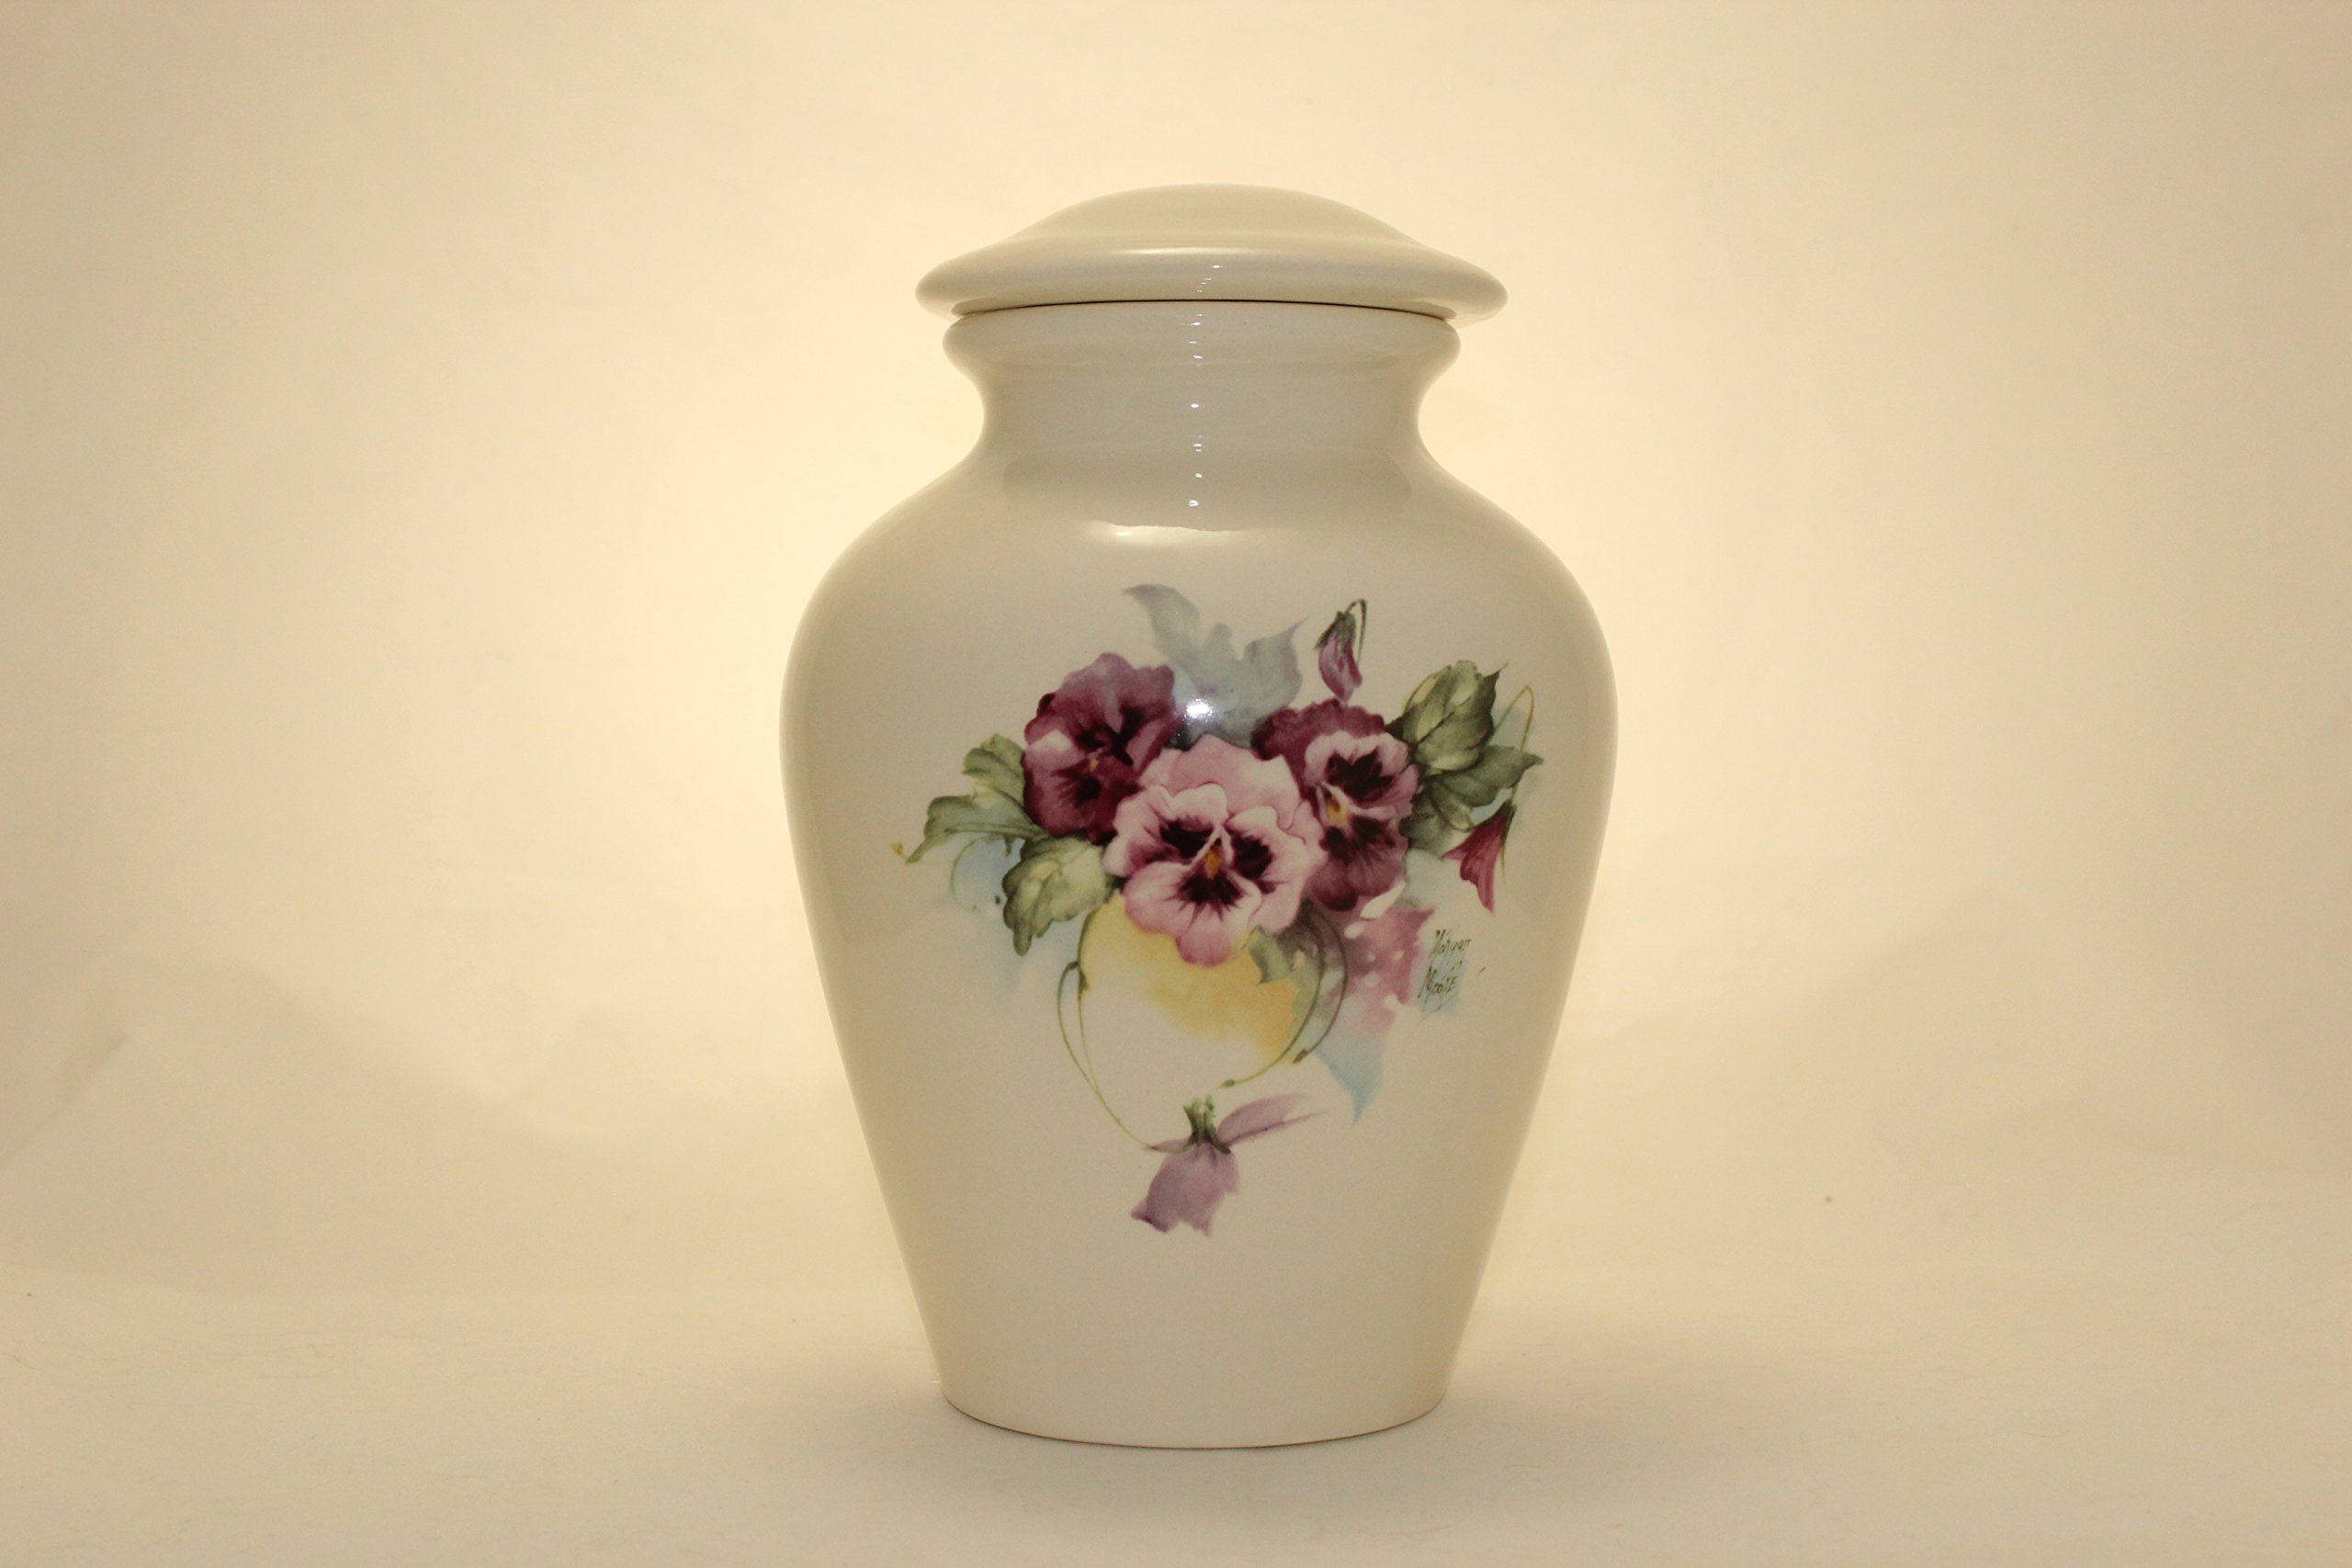 Pansy Urn- Pansies Cremation Urn or Keepsake for Ashes - Hand Made Pottery (Large 136 Cubic inches) by Skyline Arts